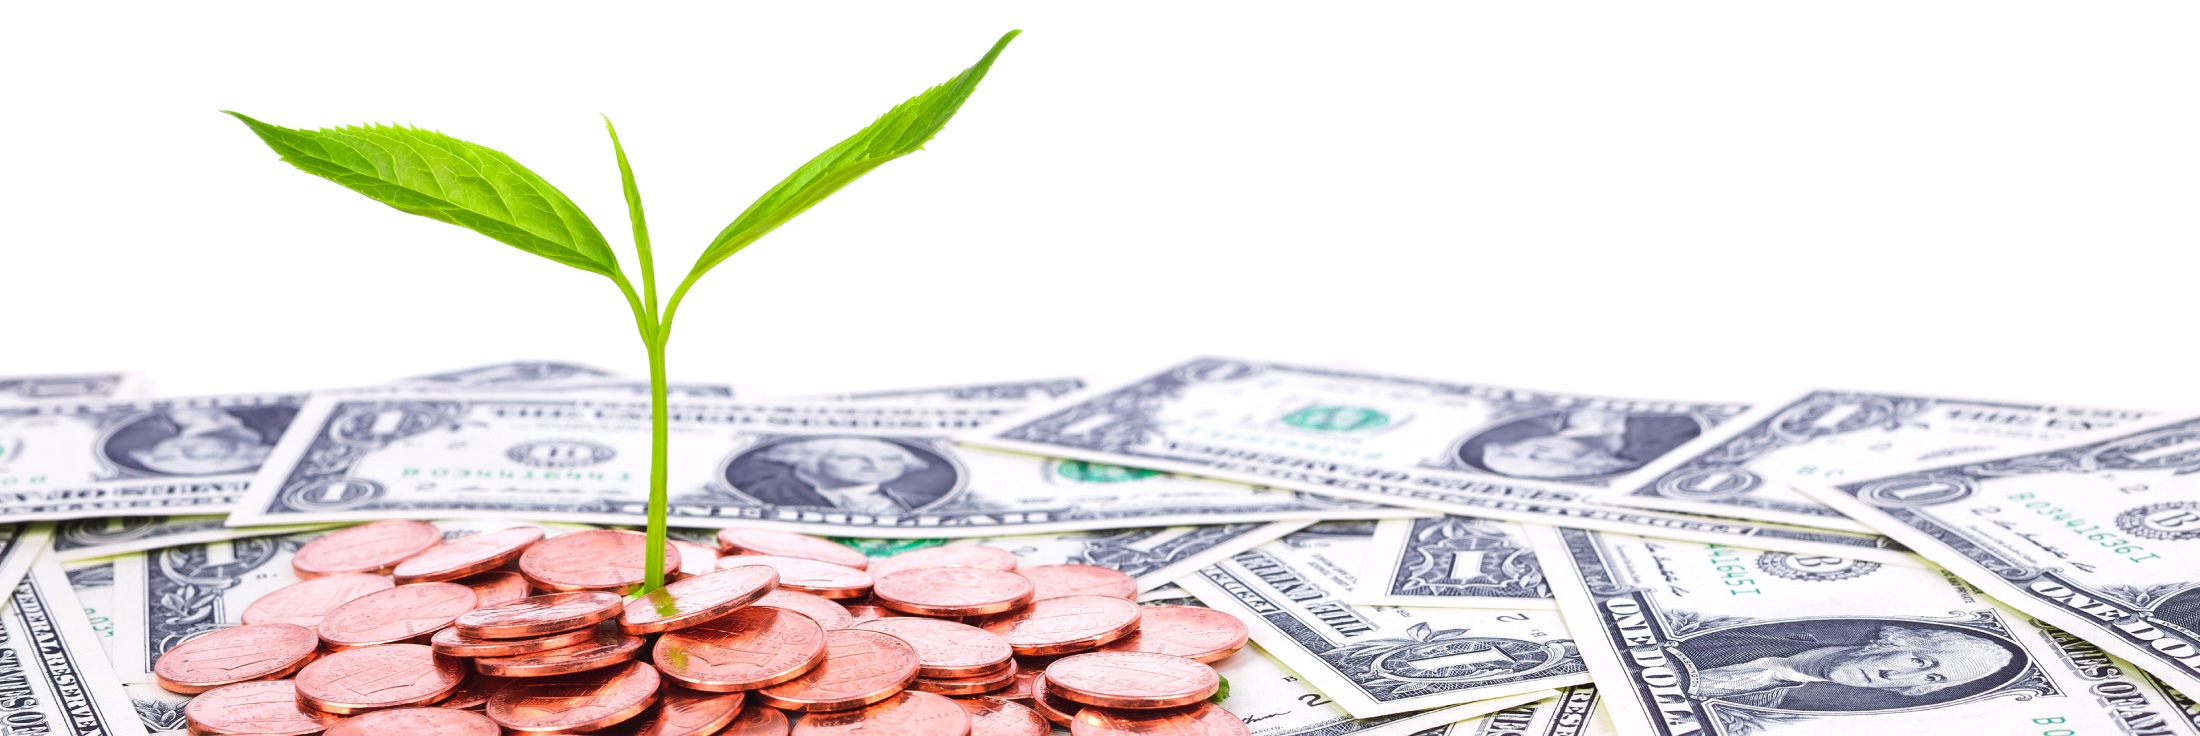 plant growth from money